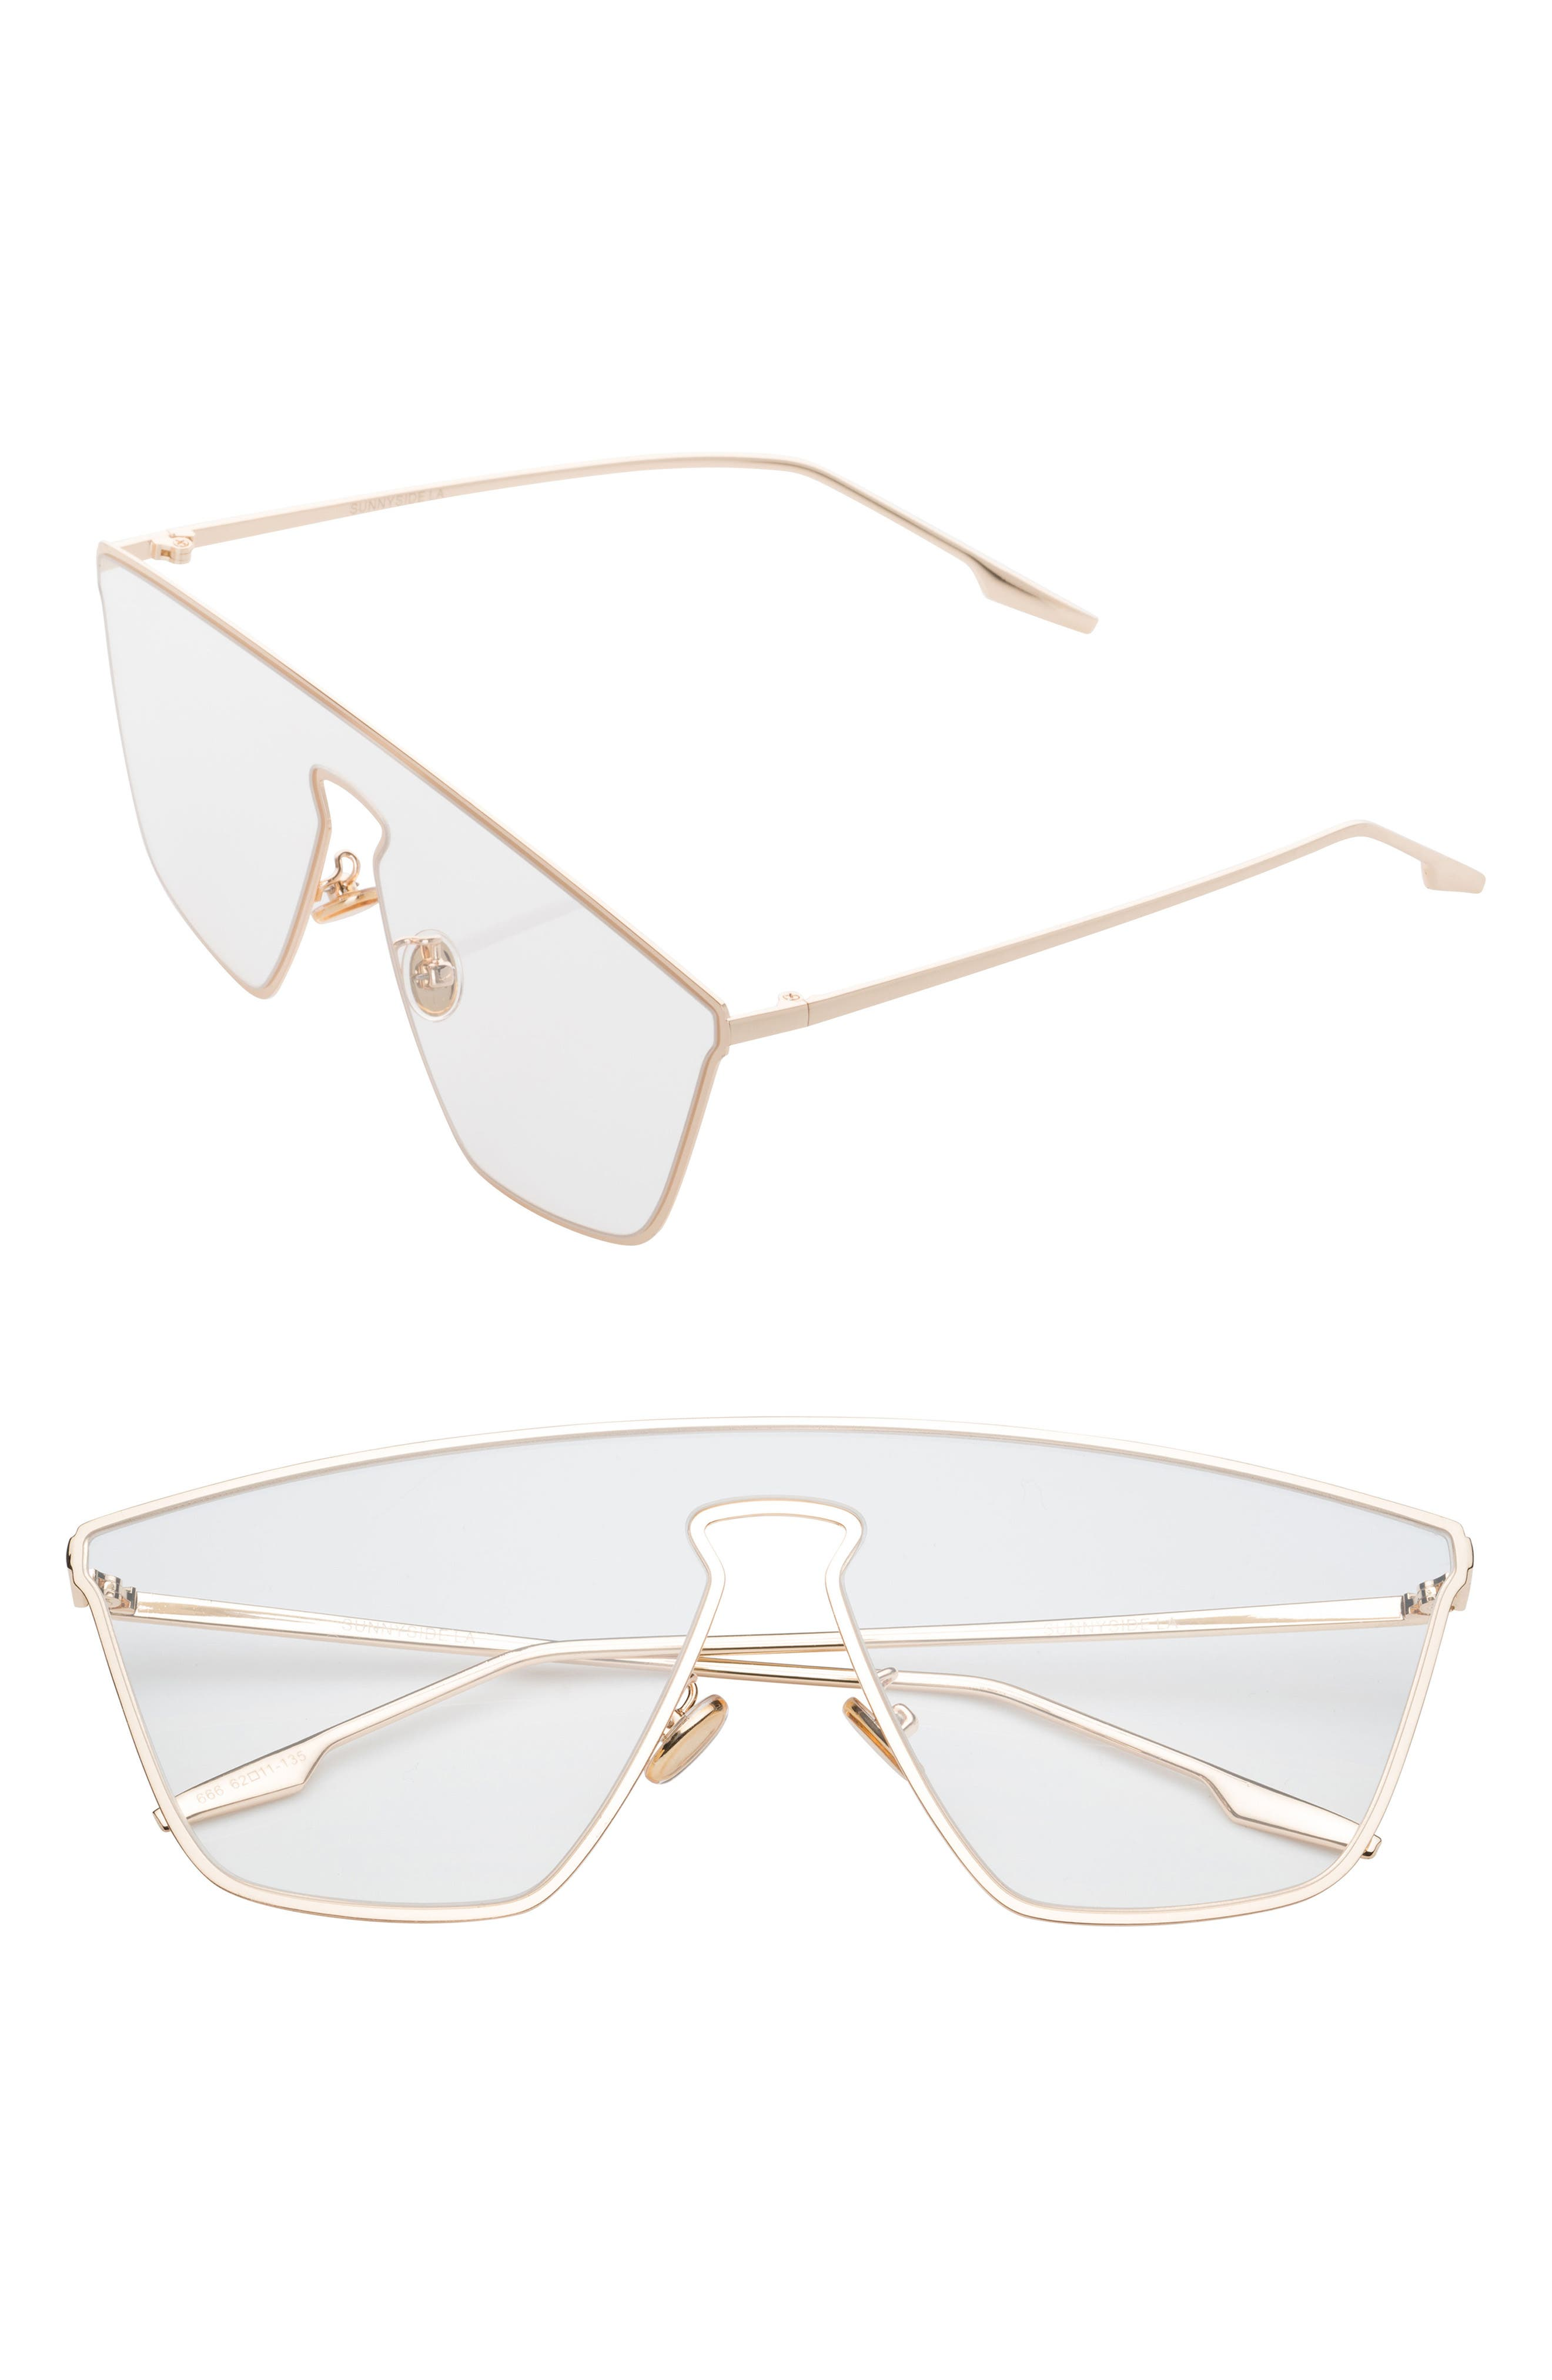 Irregular 65mm Clear Glasses,                         Main,                         color, Clear/ Gold